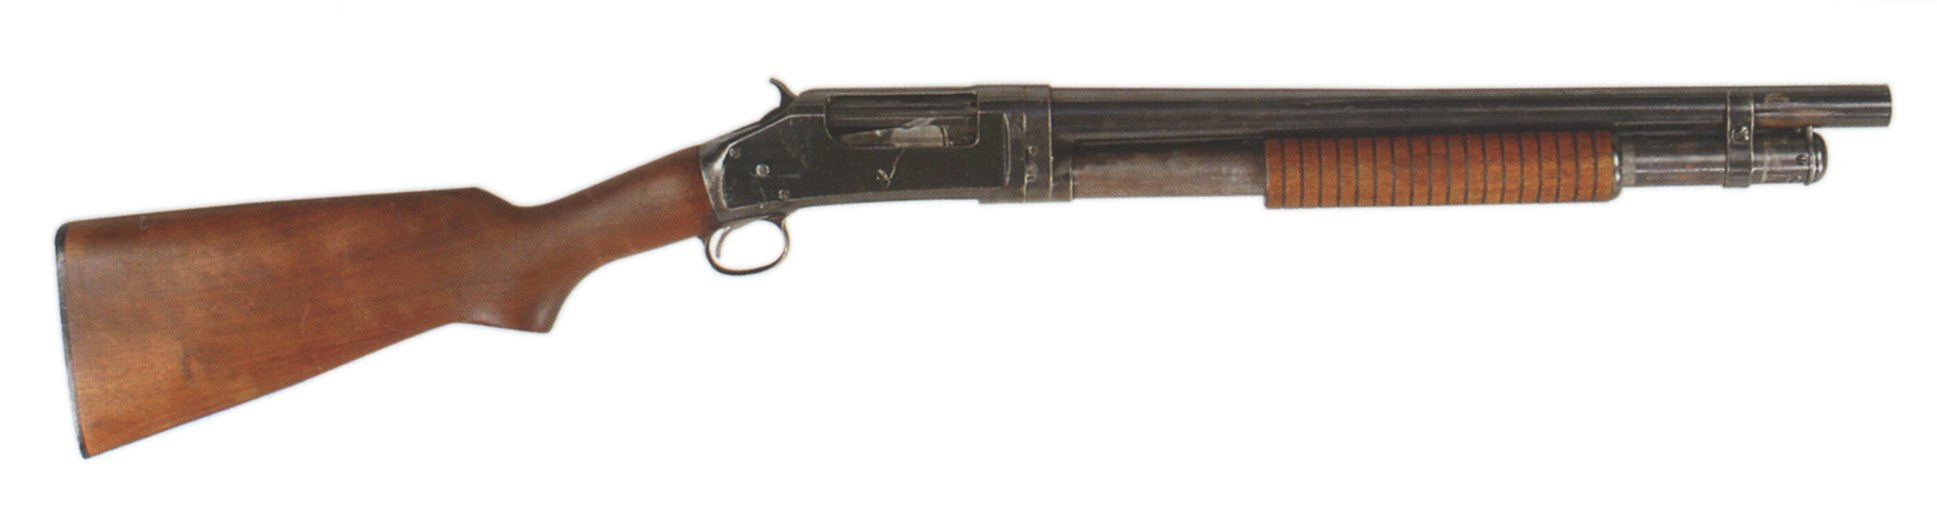 Gun used by William Holden Courtesy: Movie Madness